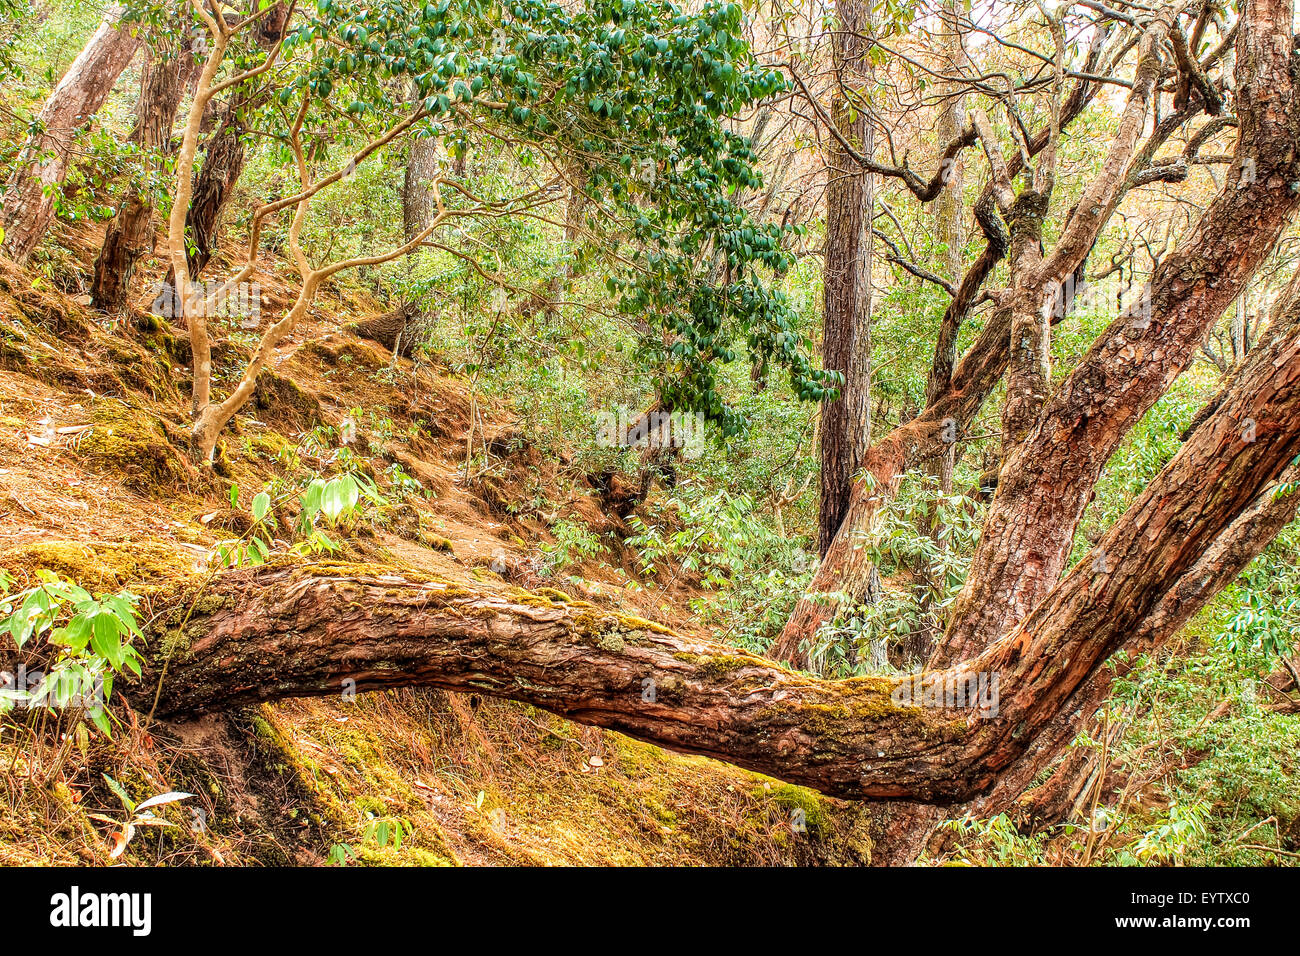 curved and disfigured tree in a rhododendron forest in Daman, Palung, Makawanpur district in Nepal - Stock Image